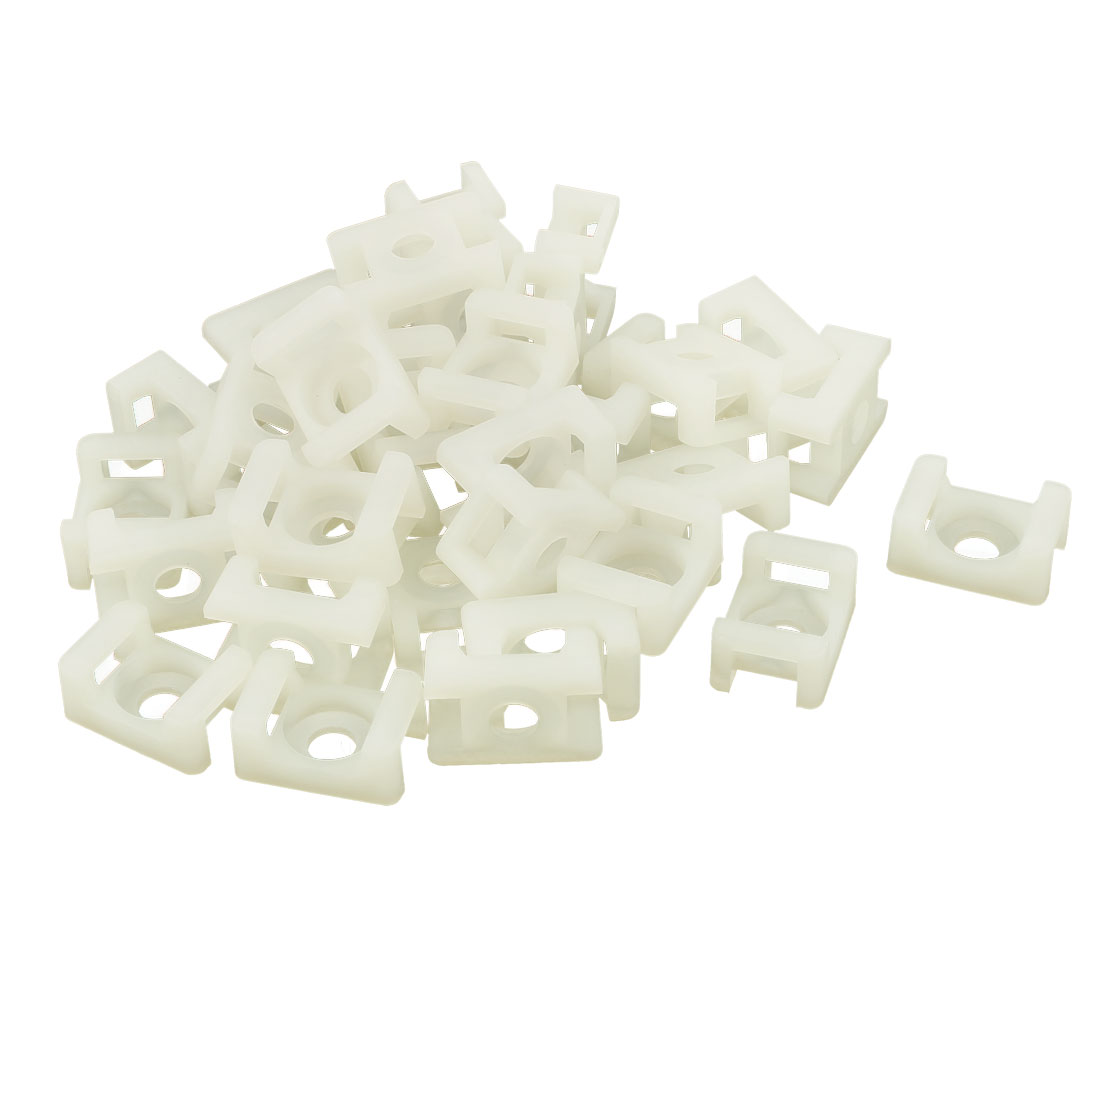 36Pcs 9.3mm Cable Tie Mount Wire Buddle Saddle Type Plastic Holder White